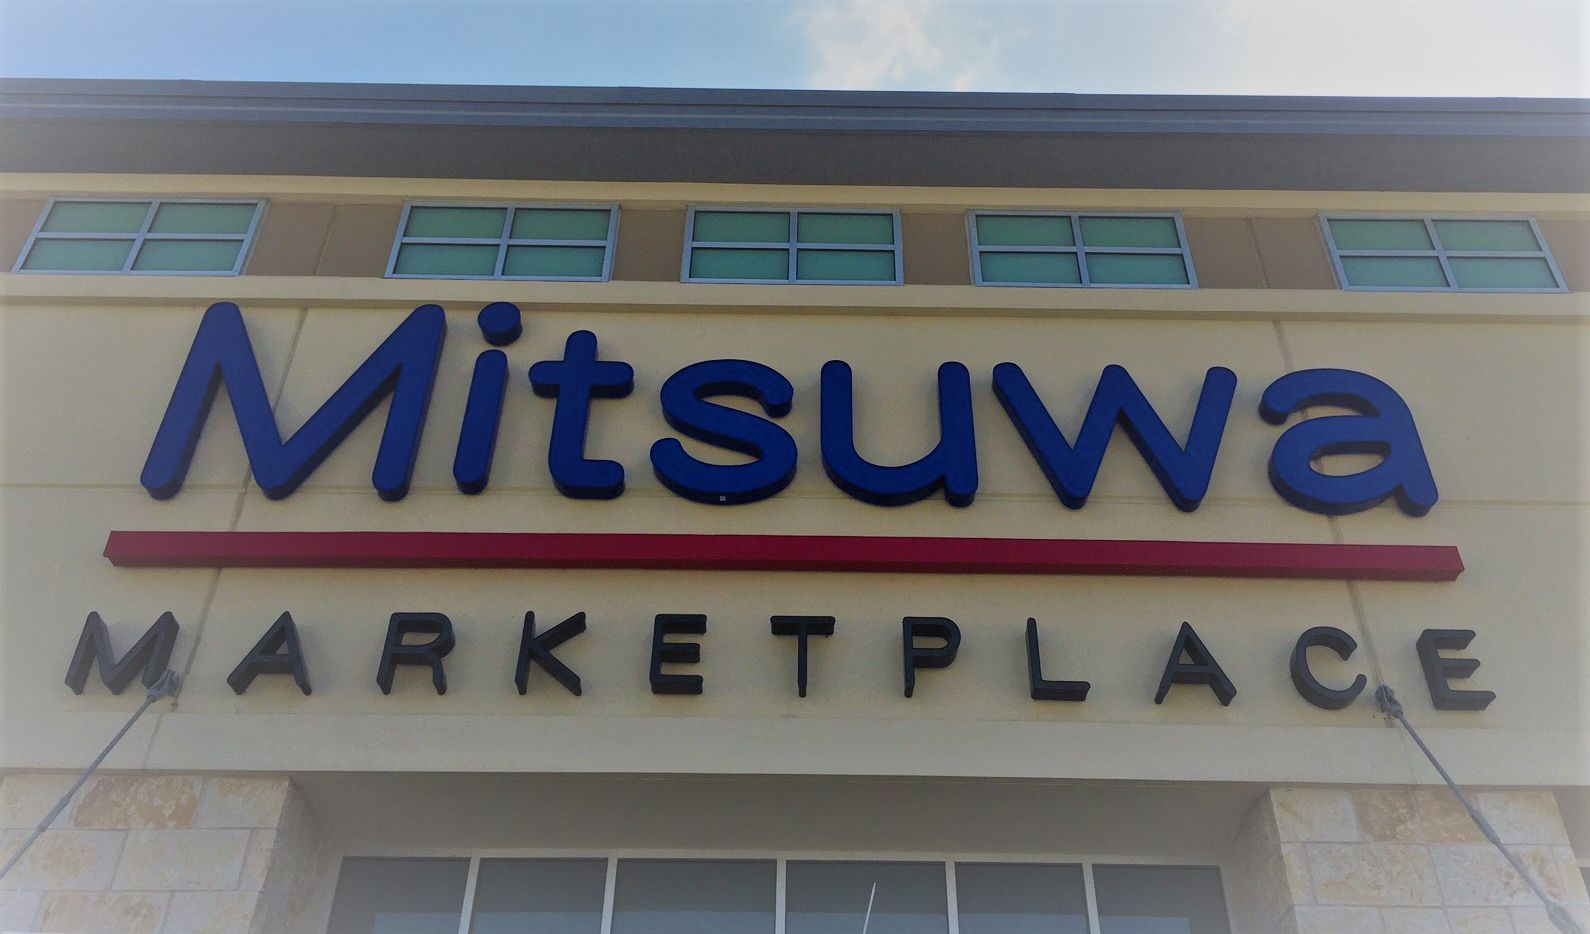 Mitsuwa store in Plano at 100 Legacy Drive, just west of N. Central Expressway will open April 14, 2017.